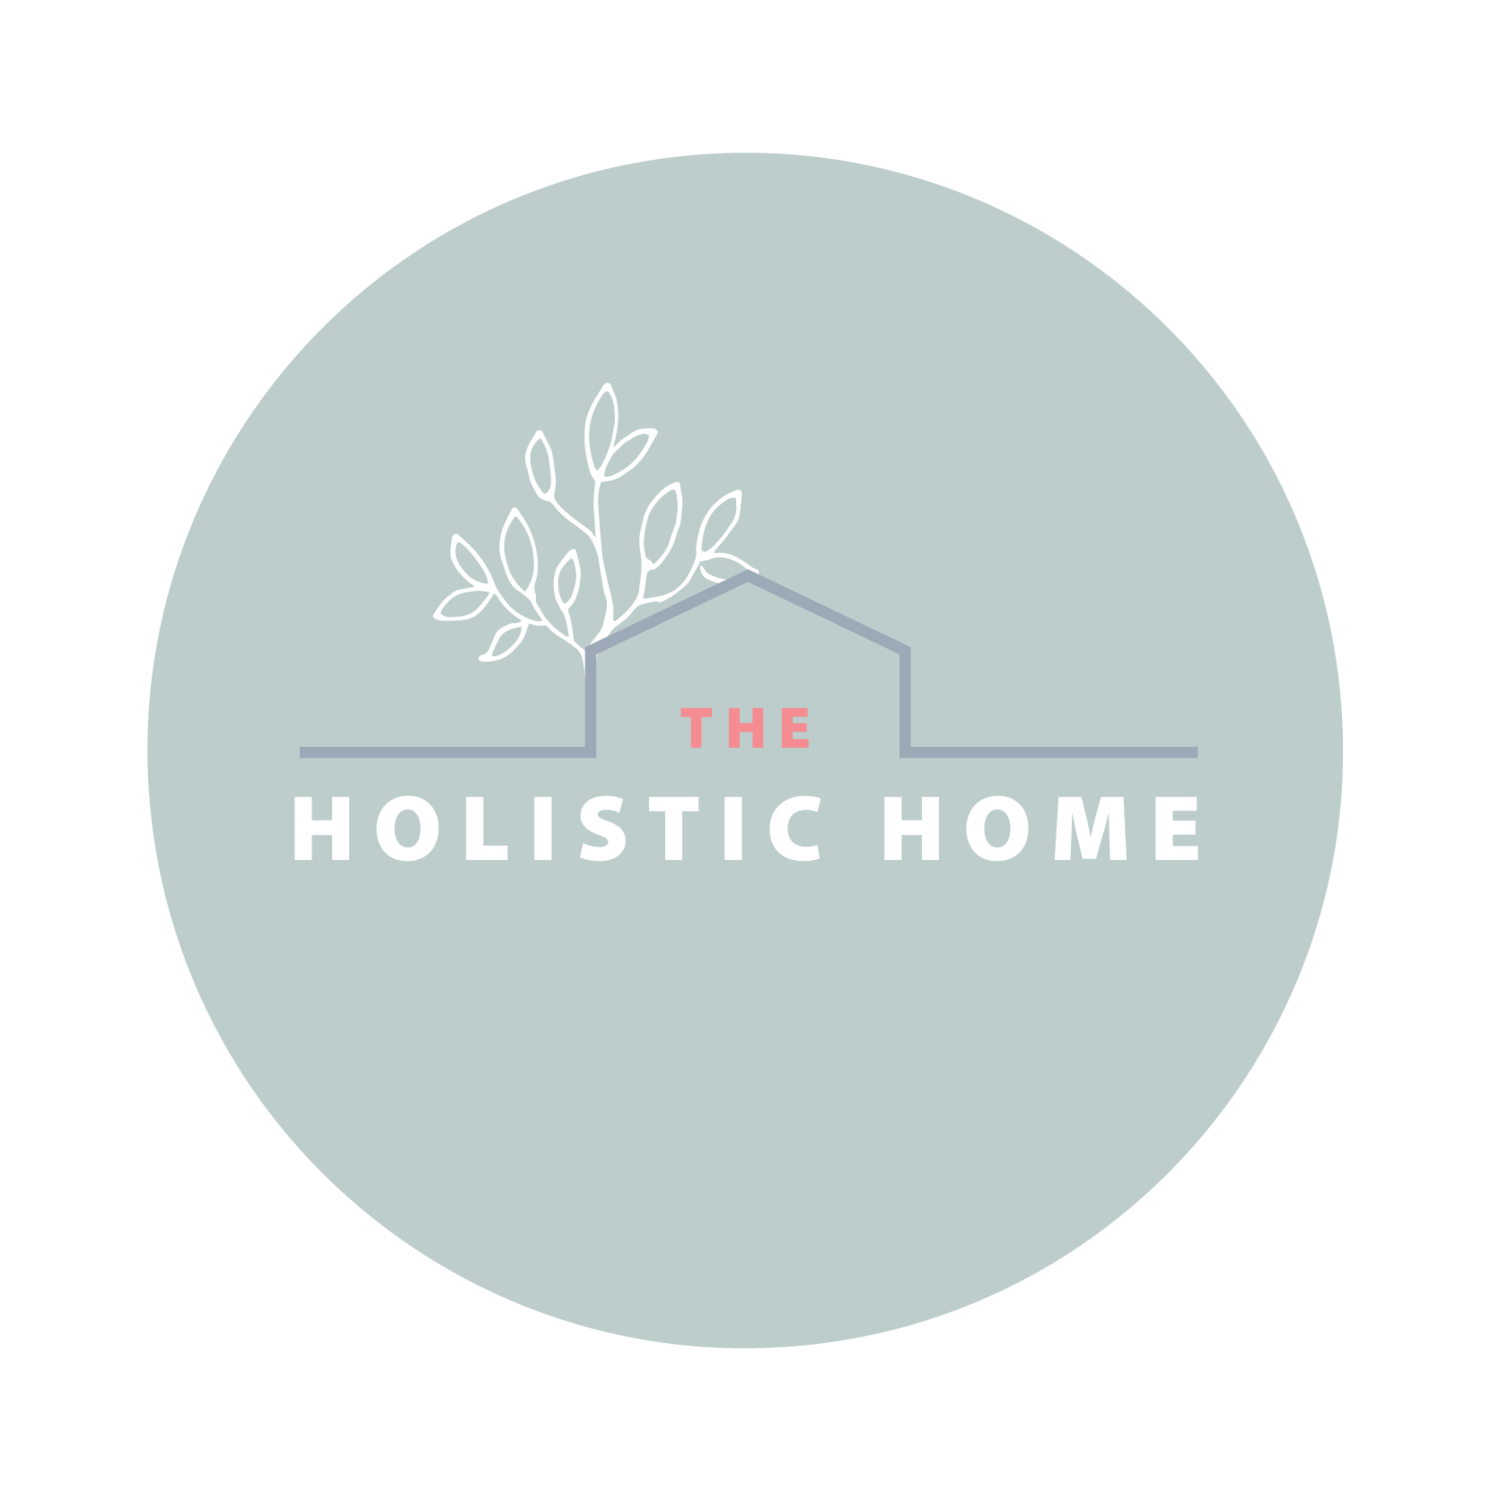 The Holistic Home